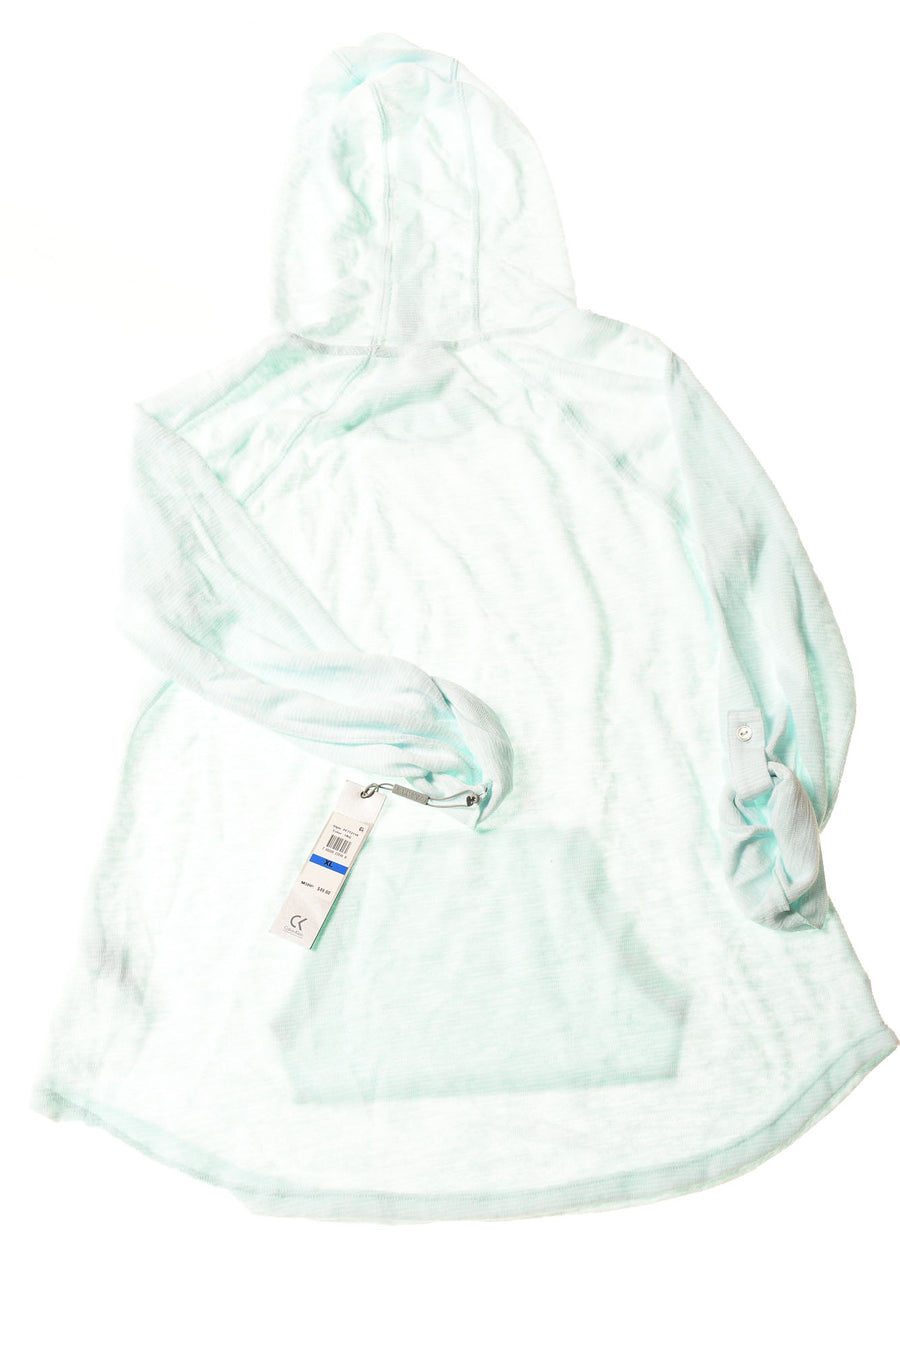 NEW Calvin Klein Women's Top X-Large Mint